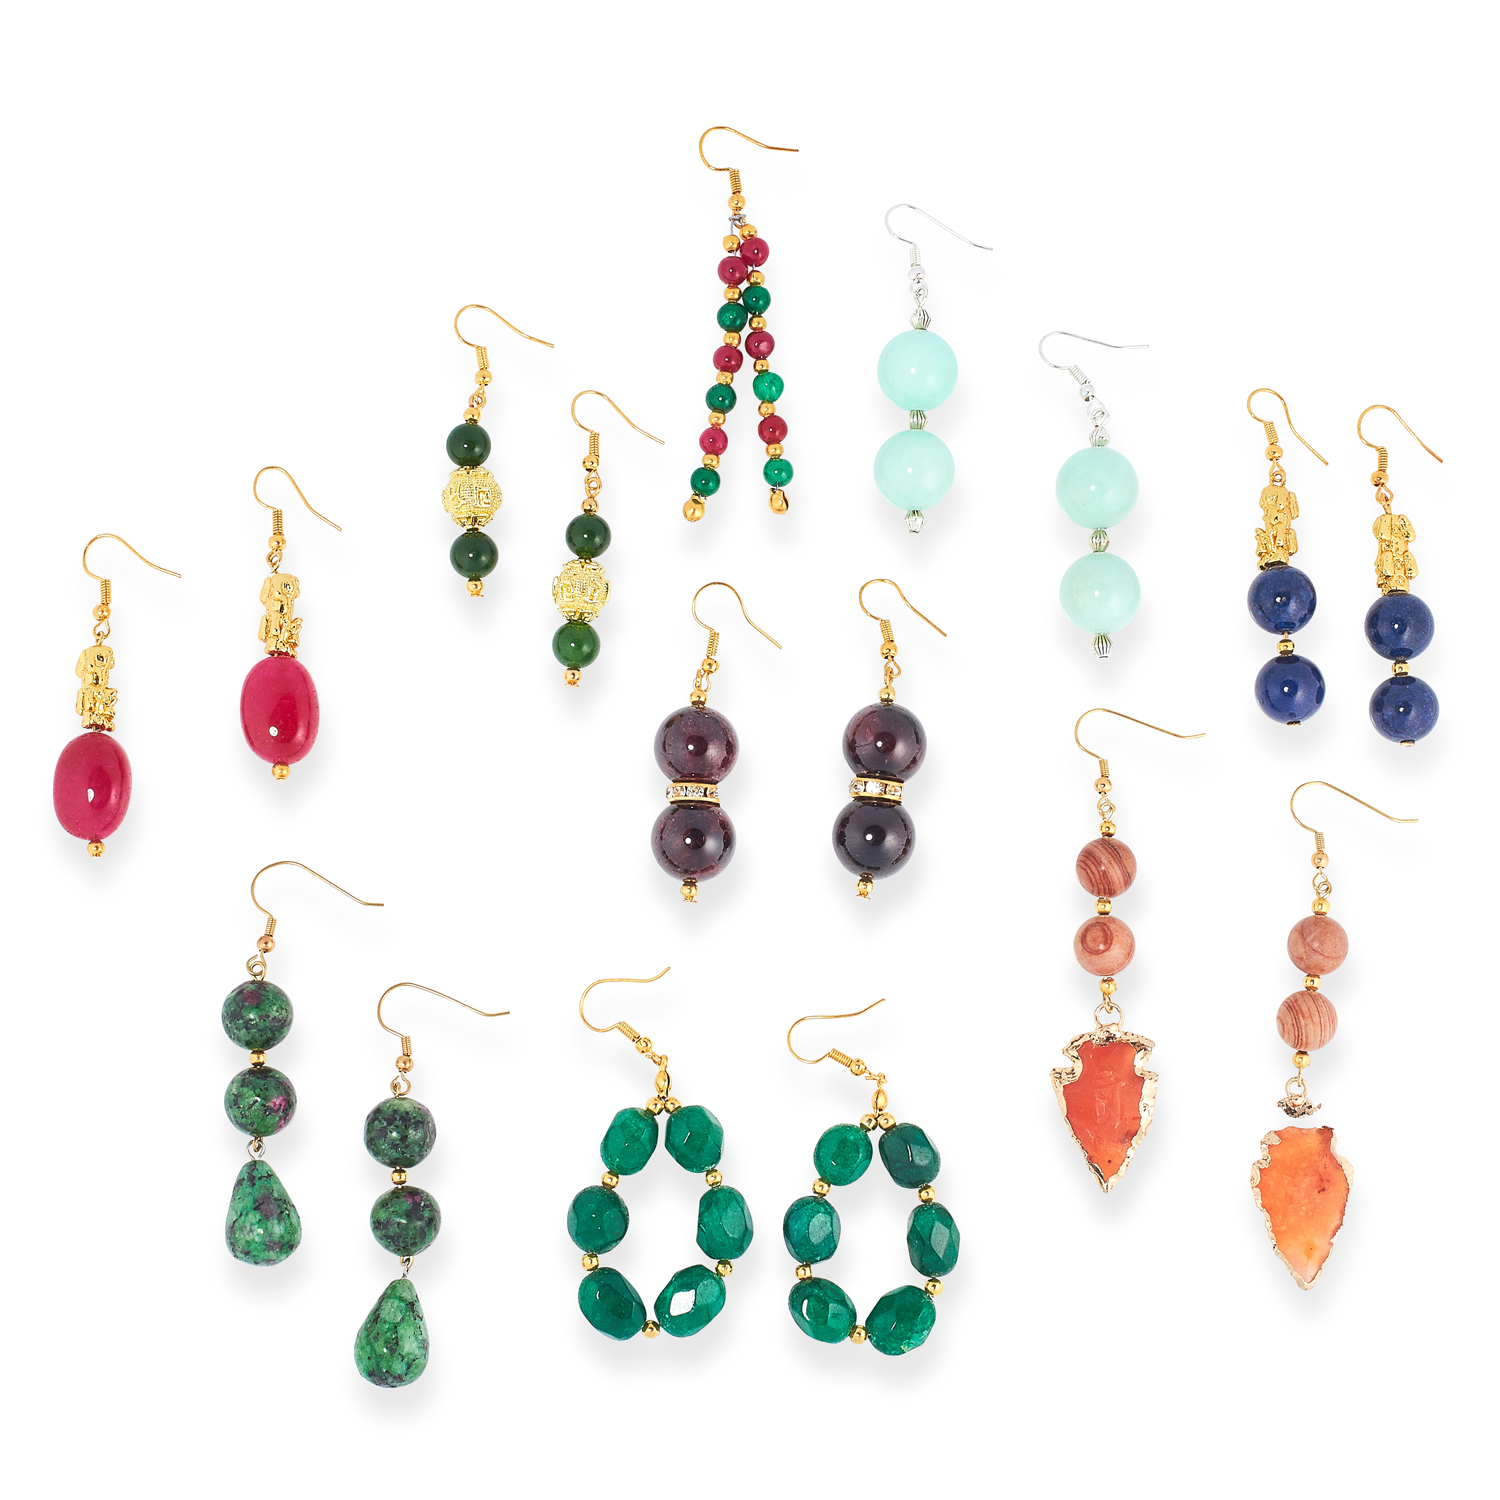 A MIXED LOT OF GEMSTONE BEAD NECKLACES, EARRINGS AND BRACELETS including jade, emerald, lapis - Image 13 of 13